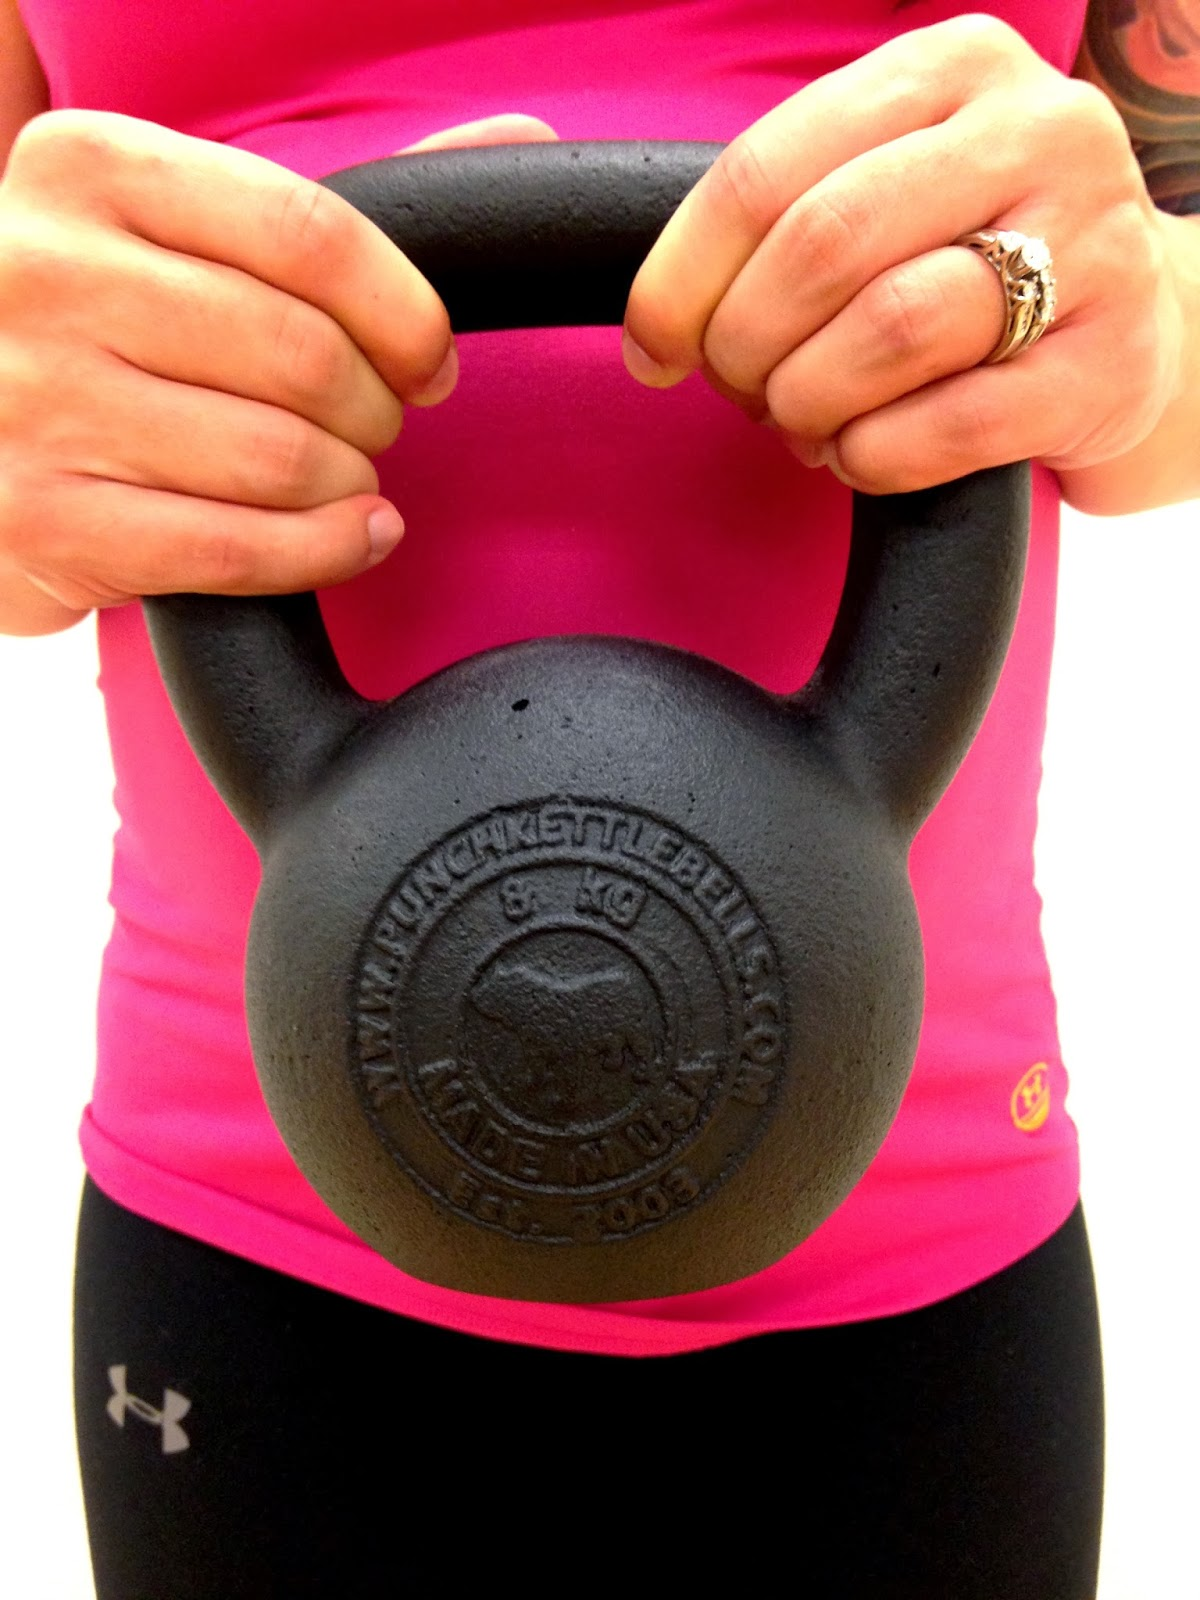 Diary of a Fit Mommy: Art of Strength Kettlebell Review